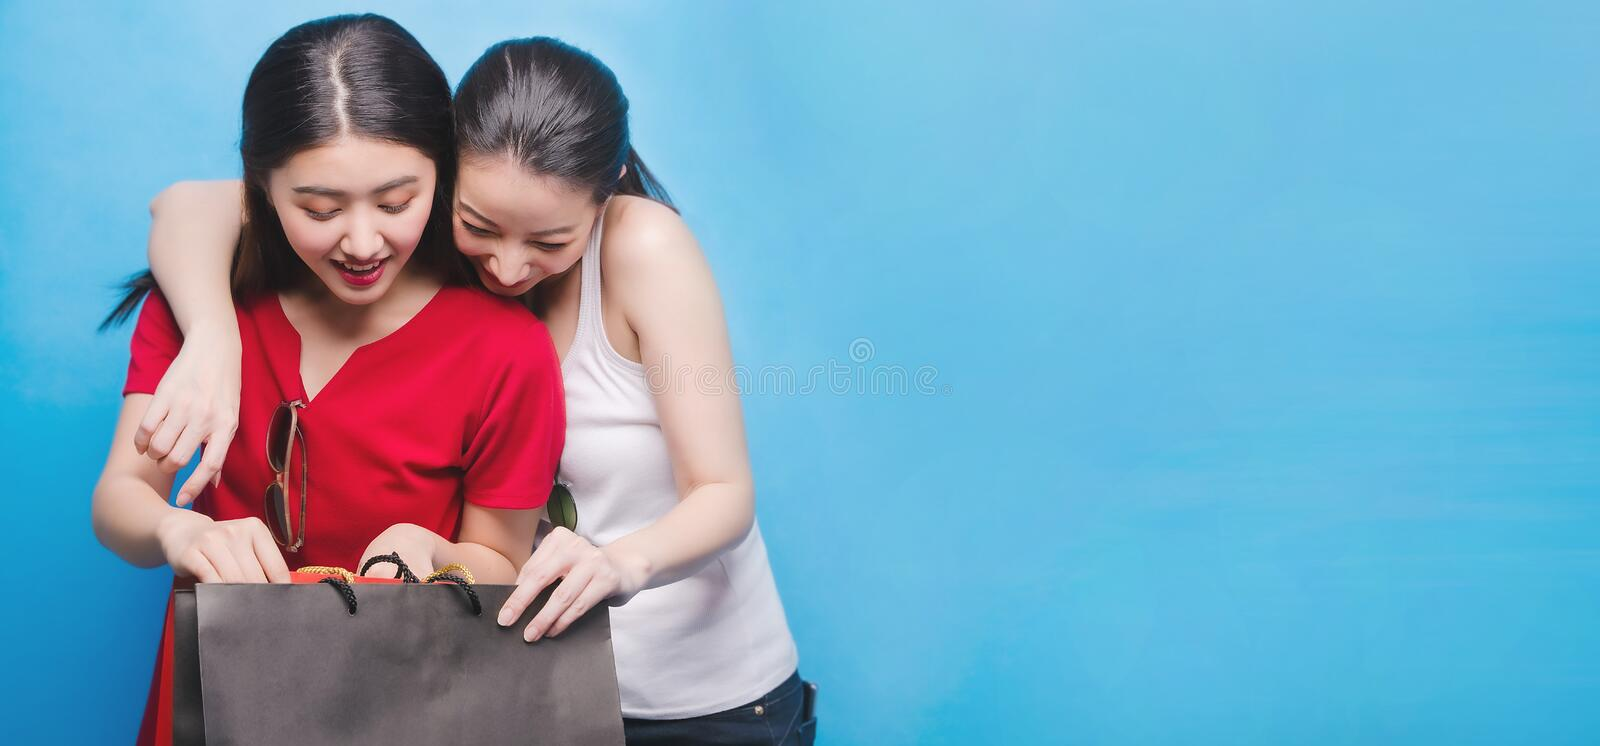 Portrait of two beautiful asian smiling young women with shopping concept. Woman holding shopping bag with attractive smiling. royalty free stock photo